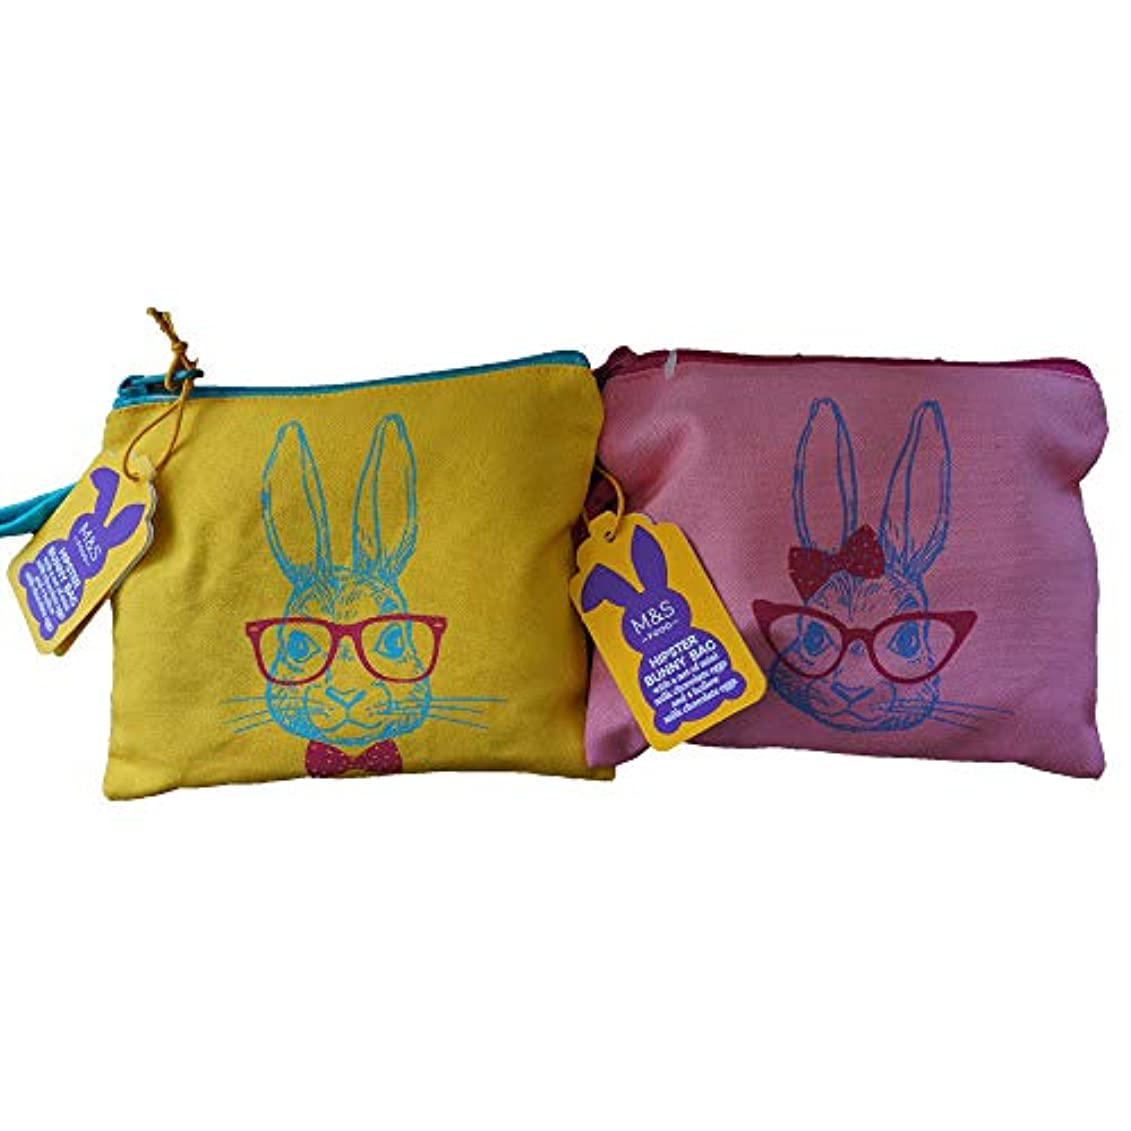 羽香水あたりM&S Hipster Bunny Bag 198g - Easter Chocolate Egg (One random bag will supply)